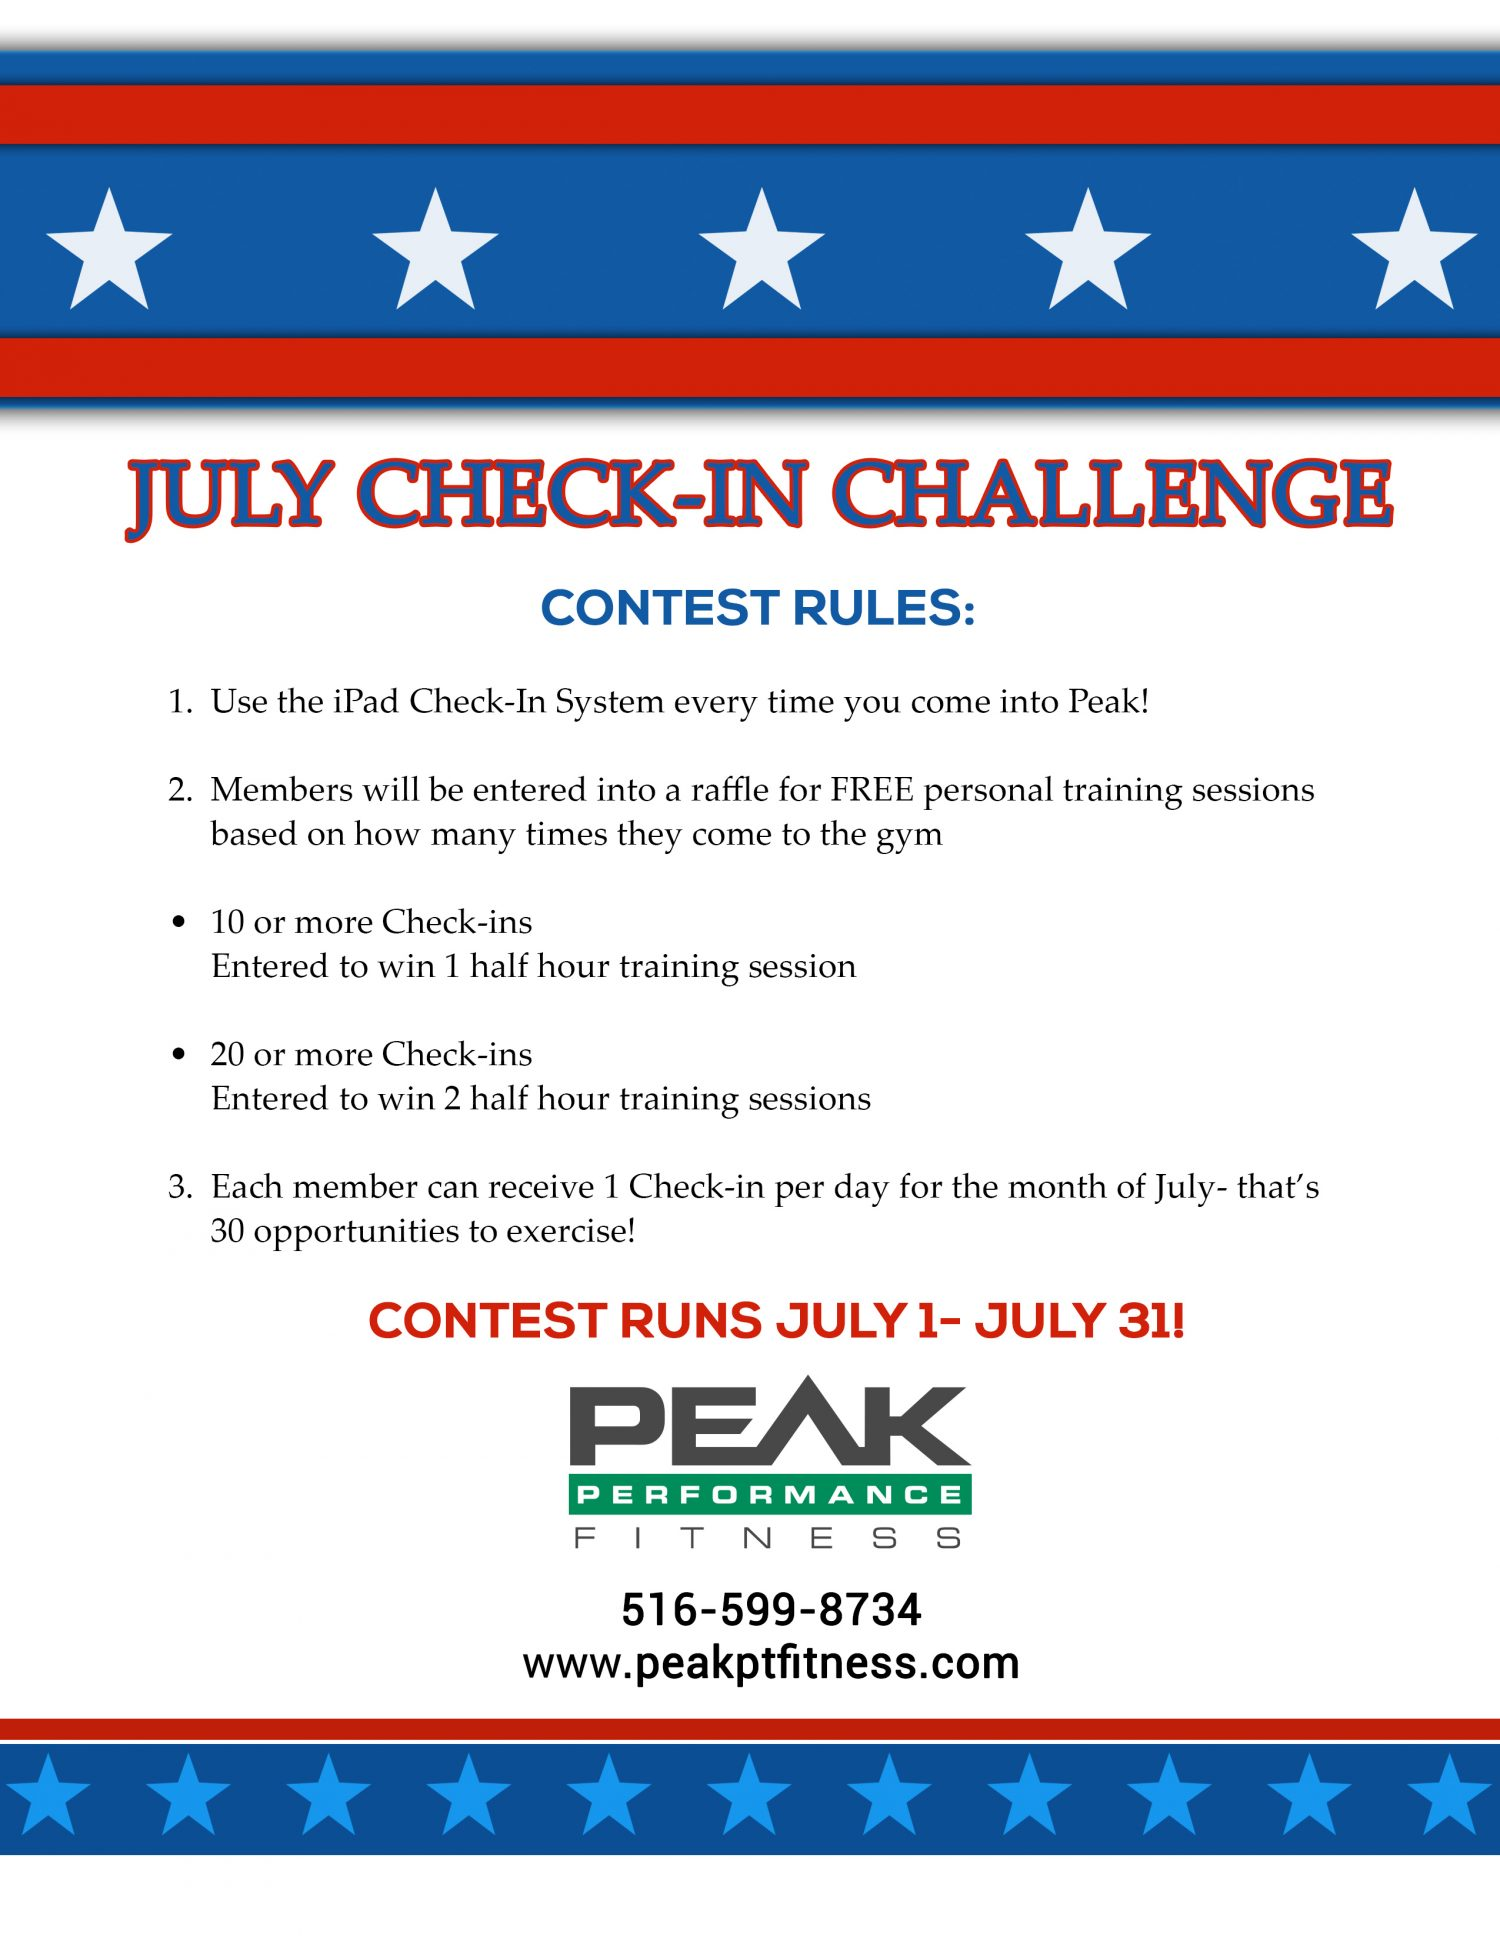 Check-In Challenge July 2016